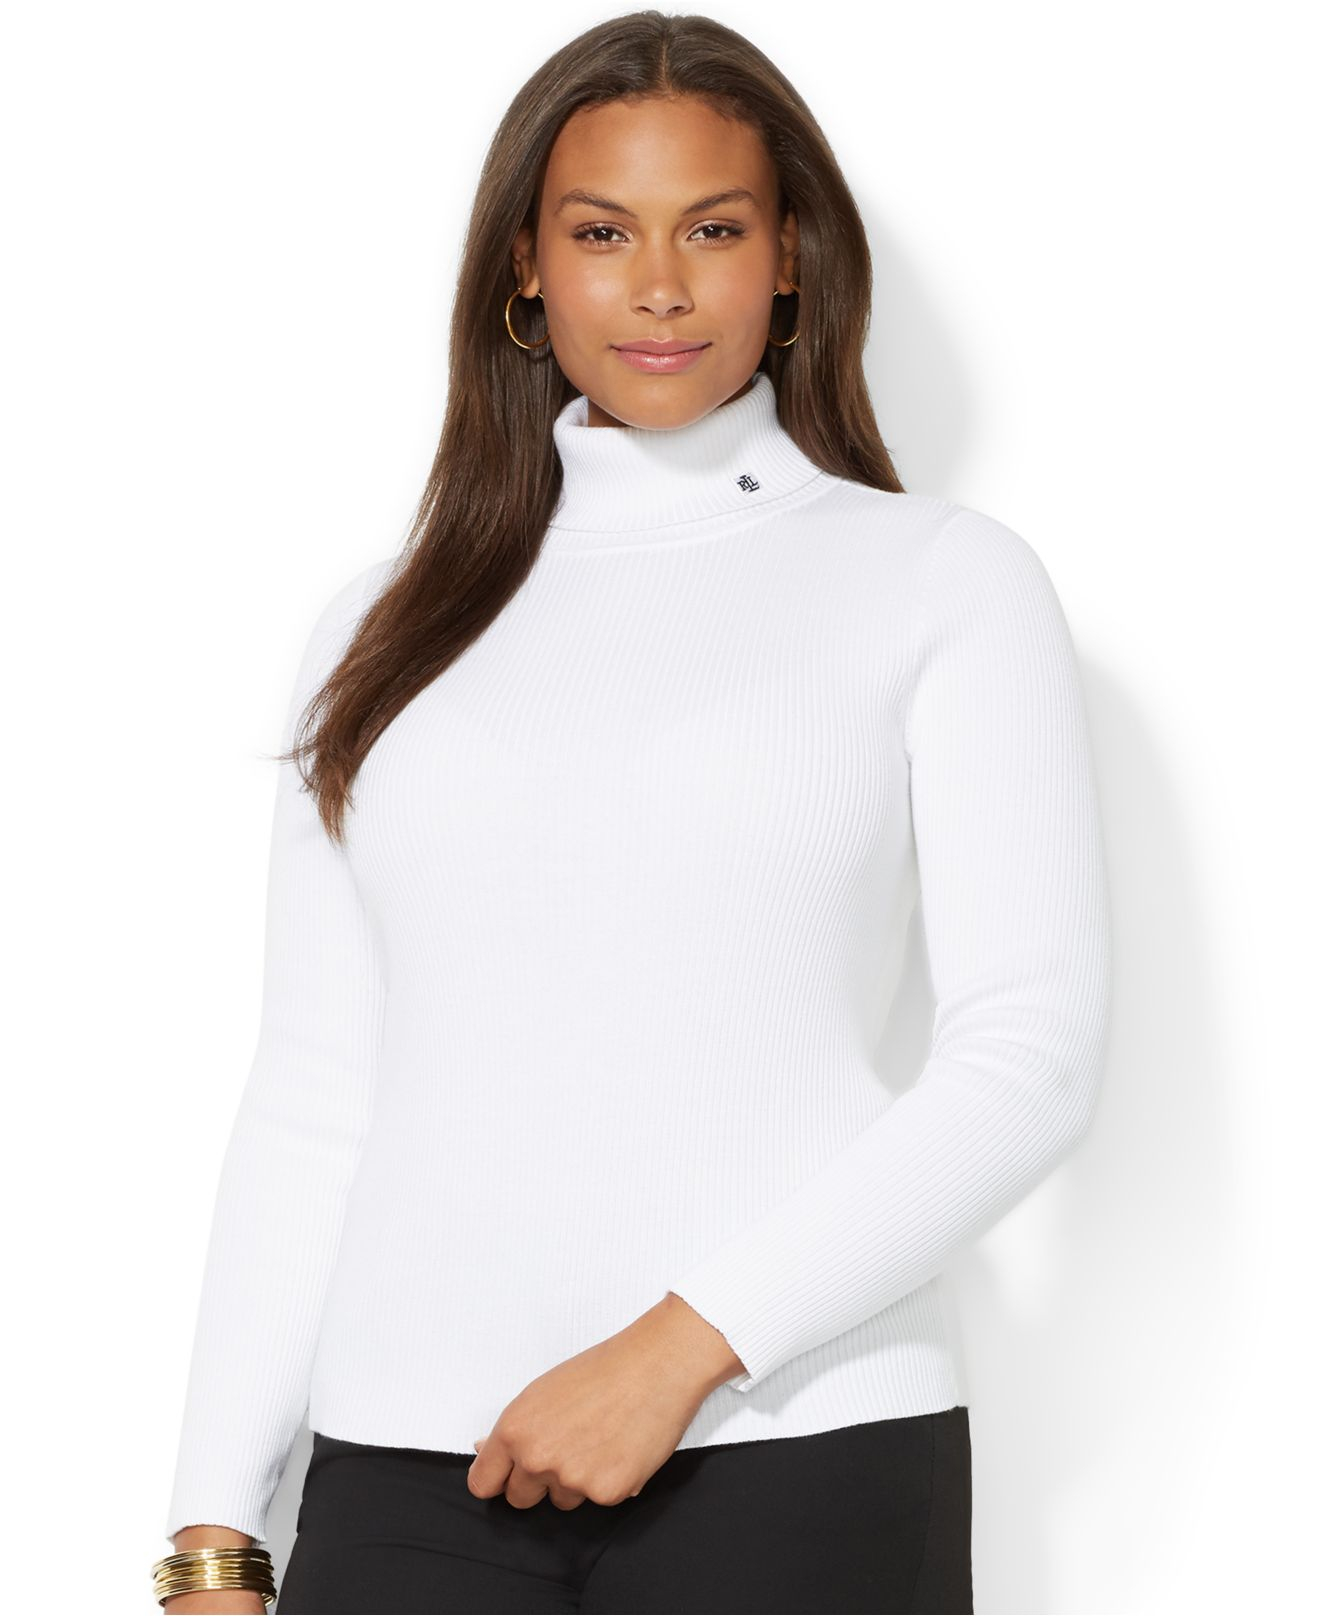 Plus Size Sleeveless Turtleneck ($ - $): 30 of items - Shop Plus Size Sleeveless Turtleneck from ALL your favorite stores & find HUGE SAVINGS up to 80% off Plus Size Sleeveless Turtleneck, including GREAT DEALS like George Tops | Plus Size Sleeveless Relaxed Turtleneck. Nwt | Color: Black | Size: 1x ($).